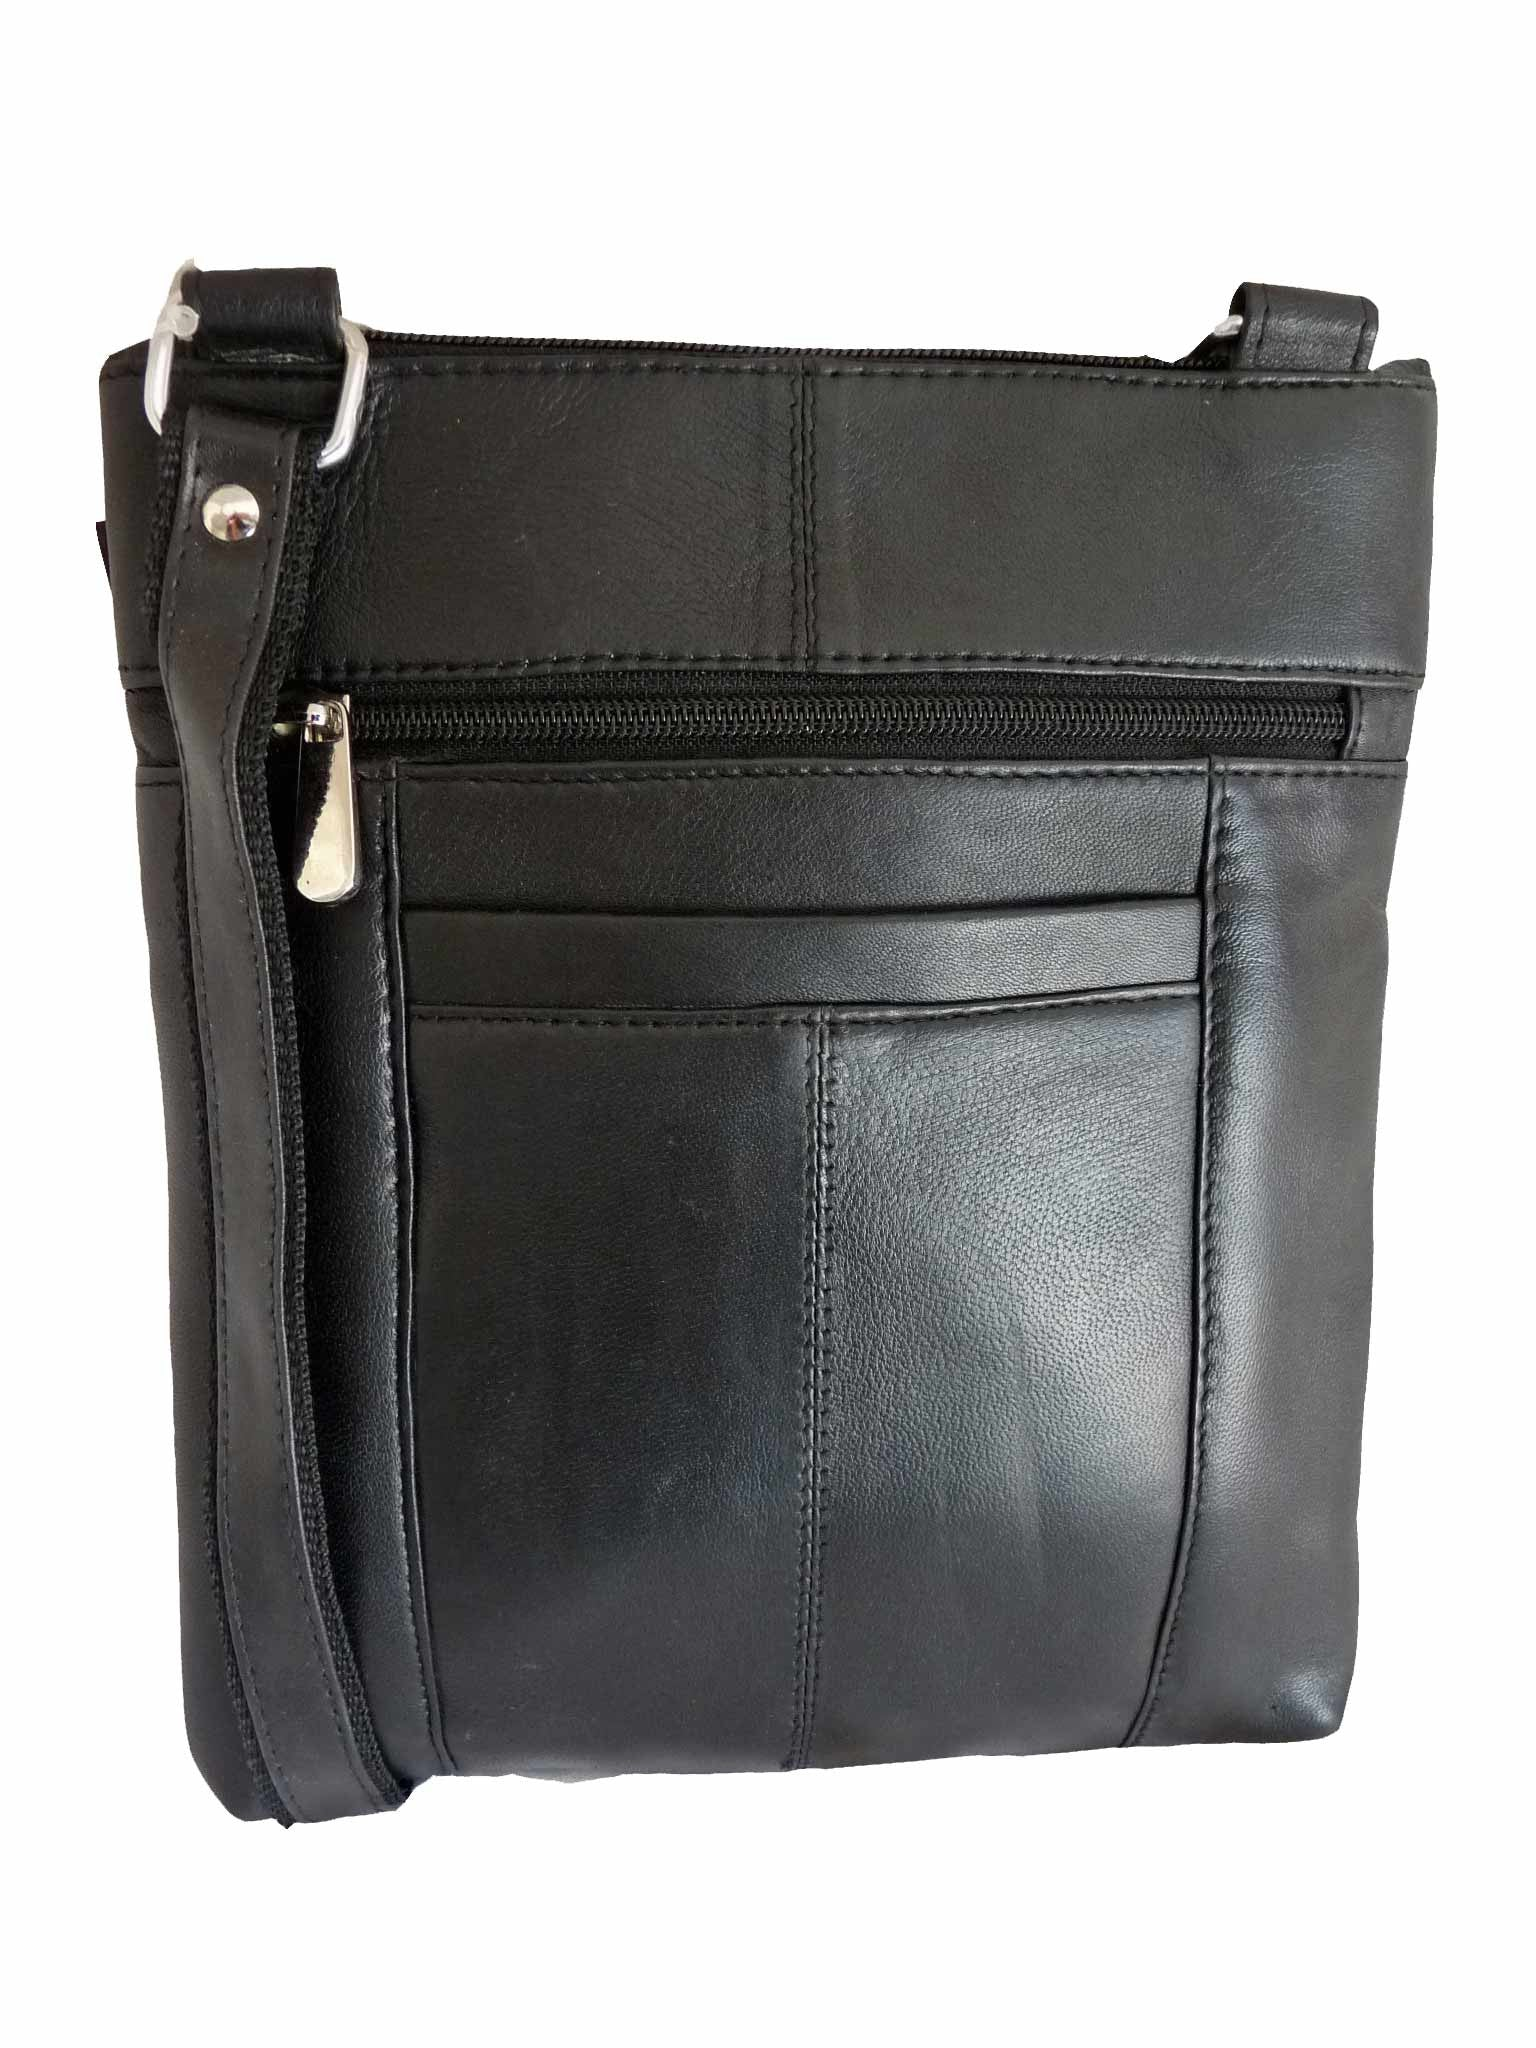 Mans leather shoulder bag RL177Kb